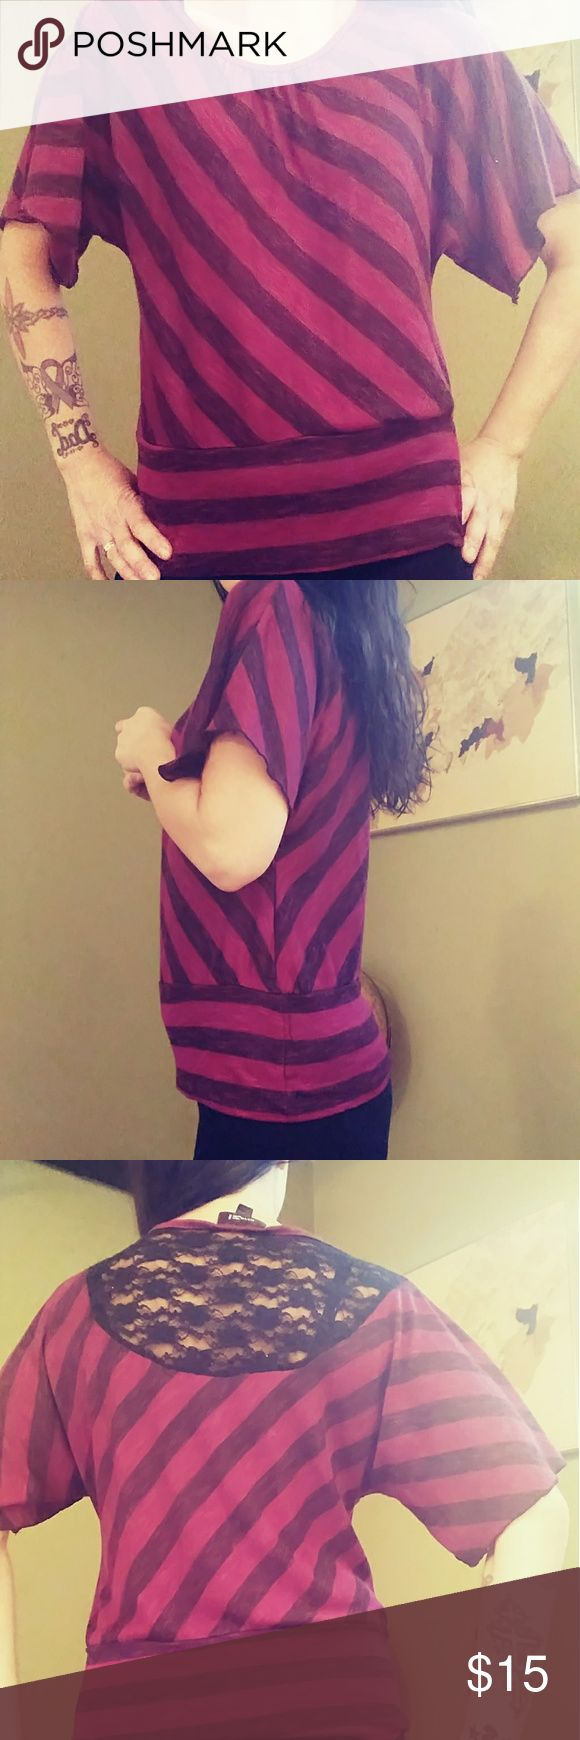 💠 STRIPED TUNIC💠 Excellent preloved condition, with lace on the upper back. this is big on me, dont feel it fits like an XL . fell free to ask any questions... reference I'm 5'6 135 lbs Iz Byer Tops Tunics